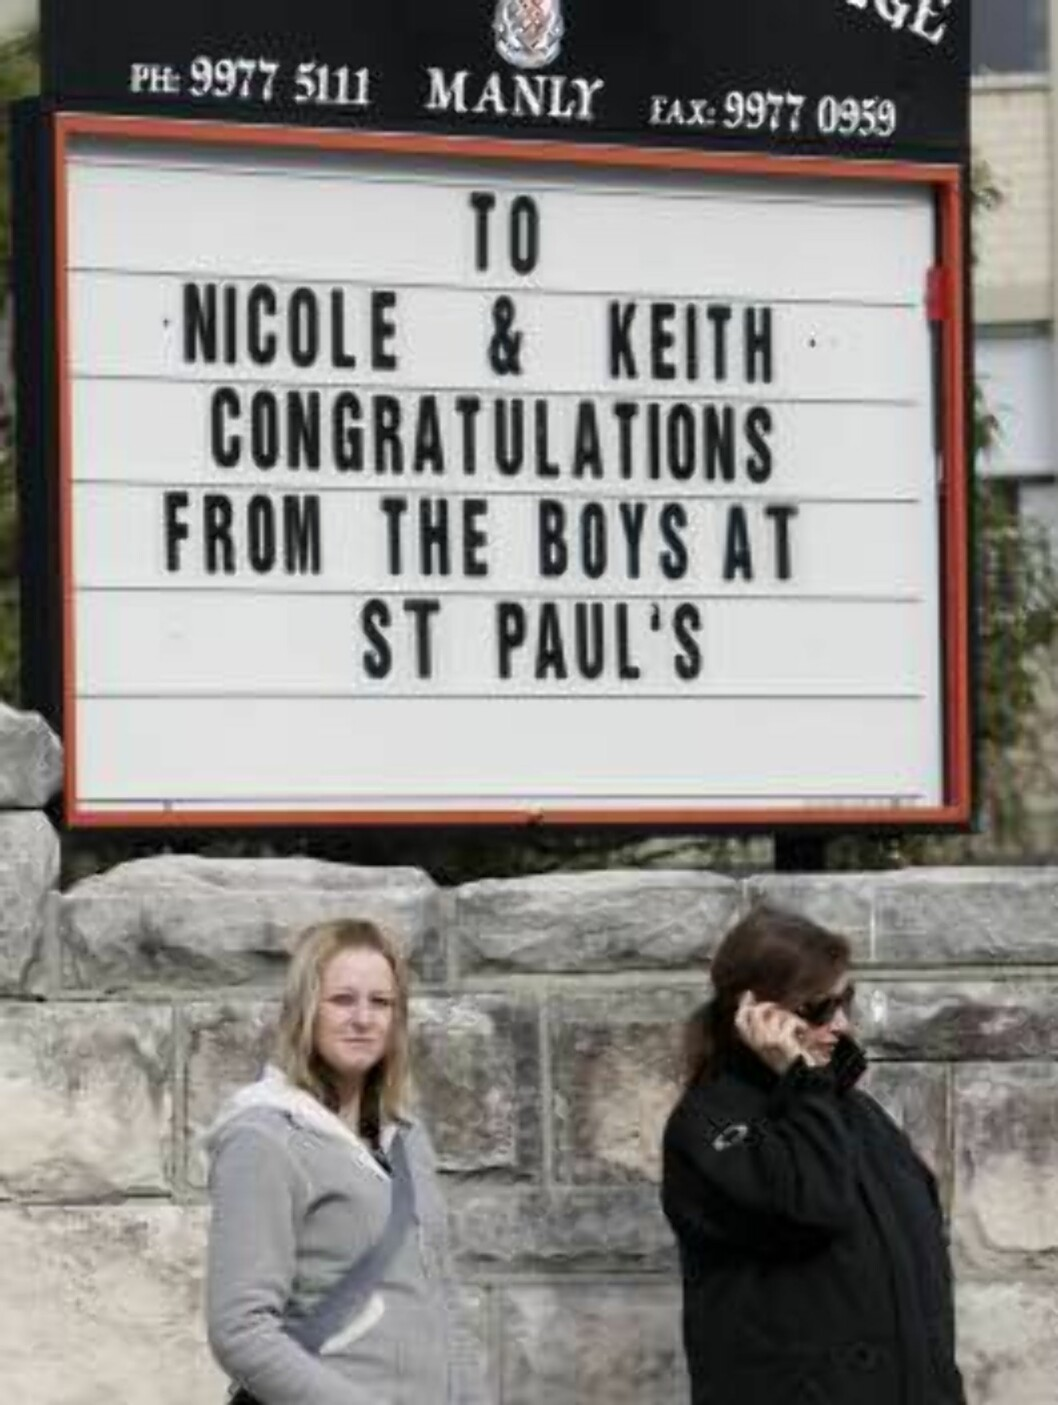 Two women wait near a sign at the chapel where Oscar-winning actor Nicole Kidman  is set to marry country music star Keith Urban, Sydney Sunday, June 25, 2006. Several thousand people lined the street for chance to glimpse Kidman and Urban. (AP Photo/Rick Foto: AP/Scanpix